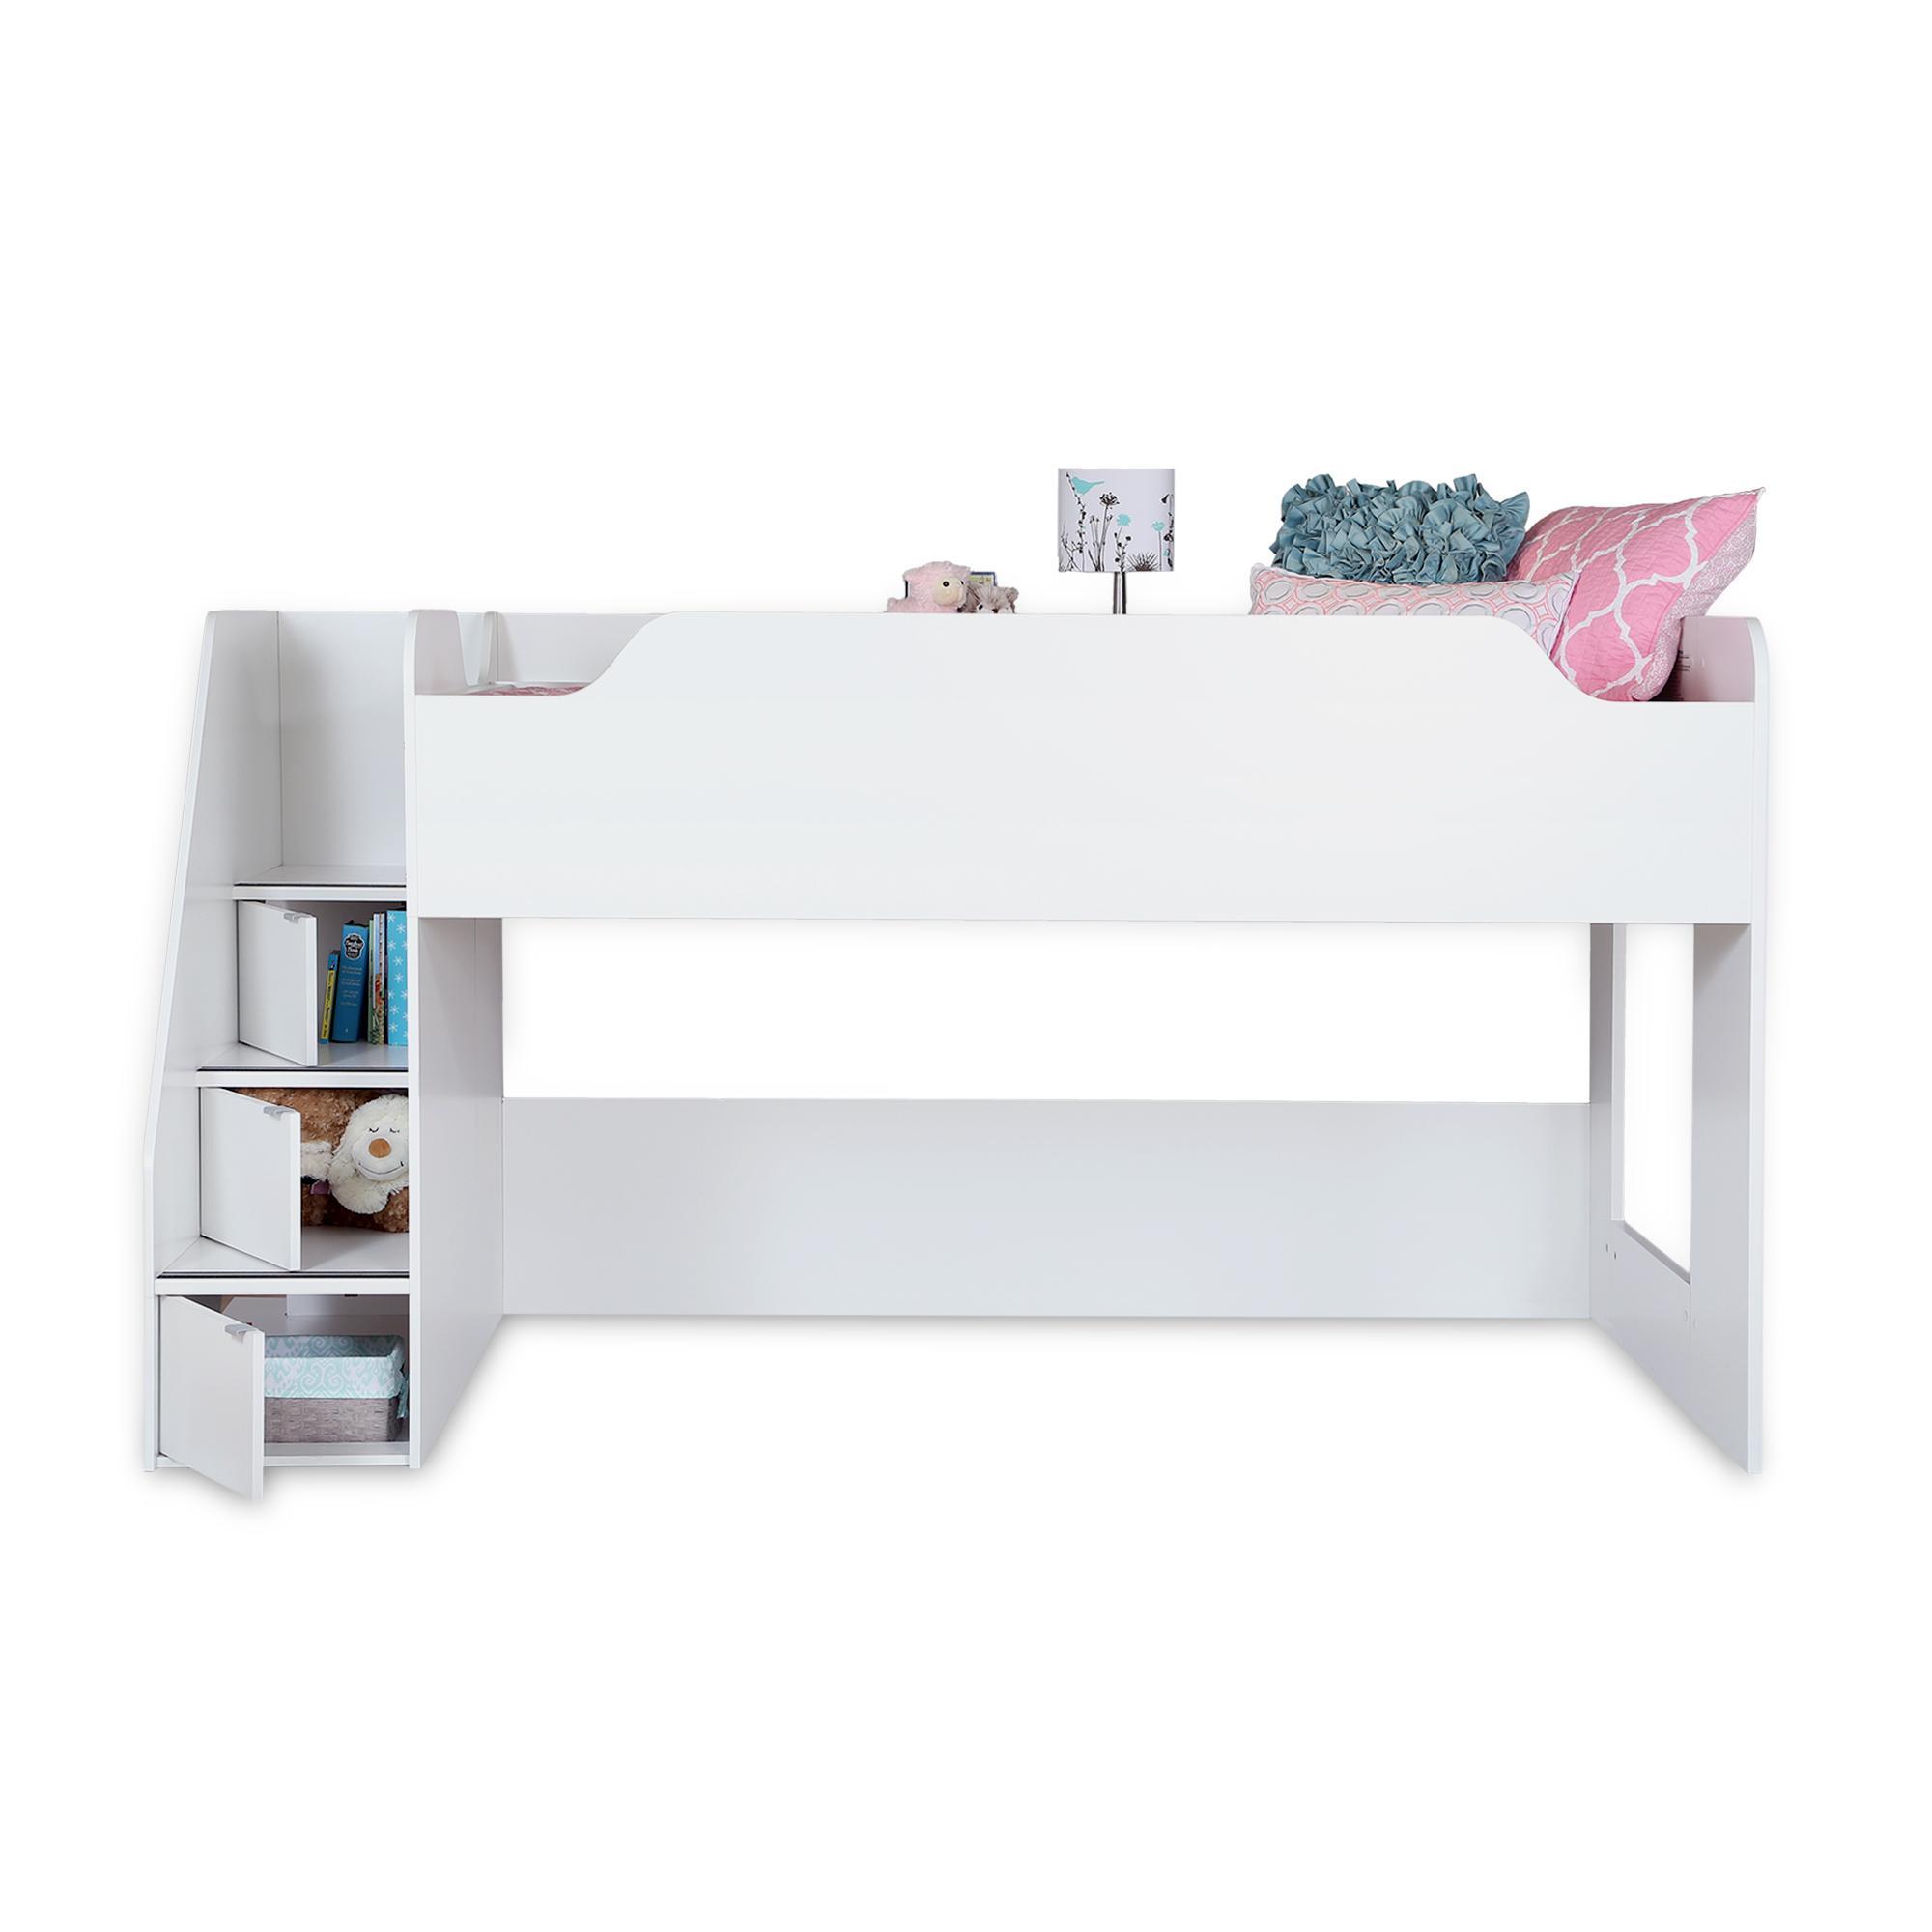 imagine collection twin loft bed with storage pure white by south shore kitchen. Black Bedroom Furniture Sets. Home Design Ideas